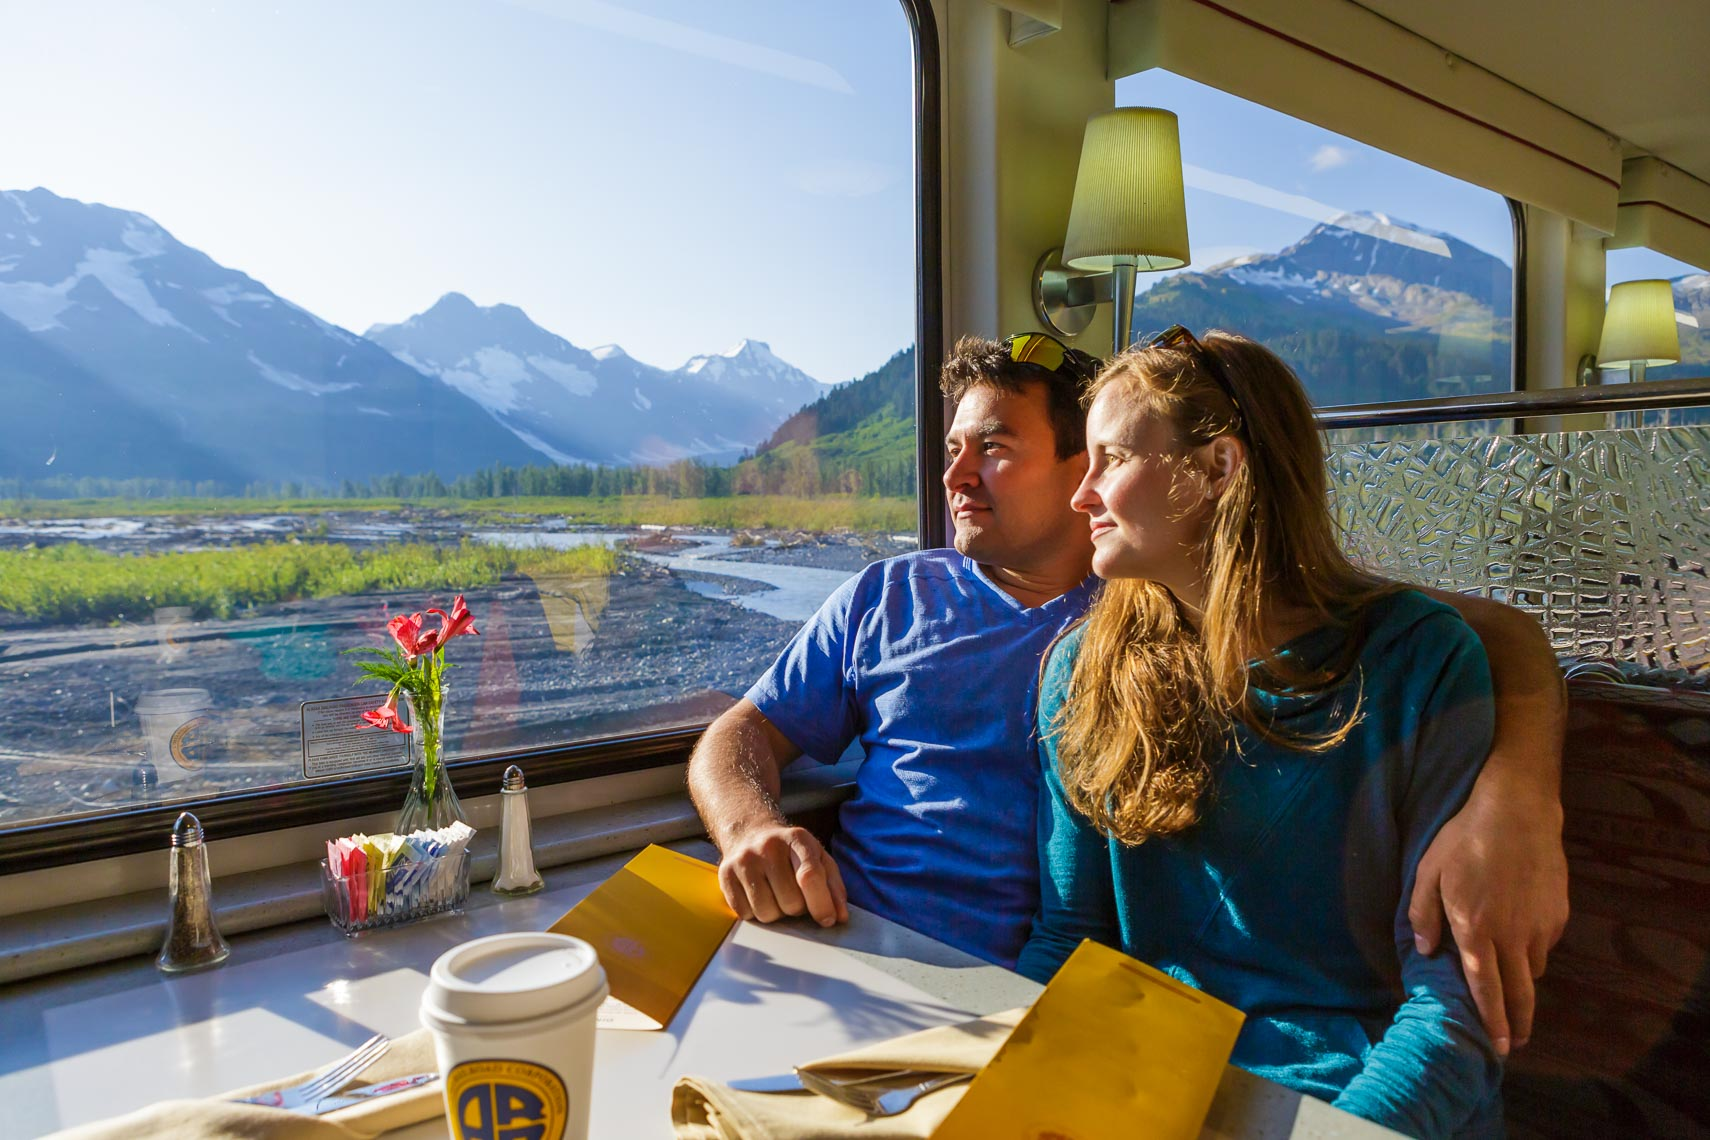 Couple in Alaska Railroad Dining Cart | Michael Deyoung